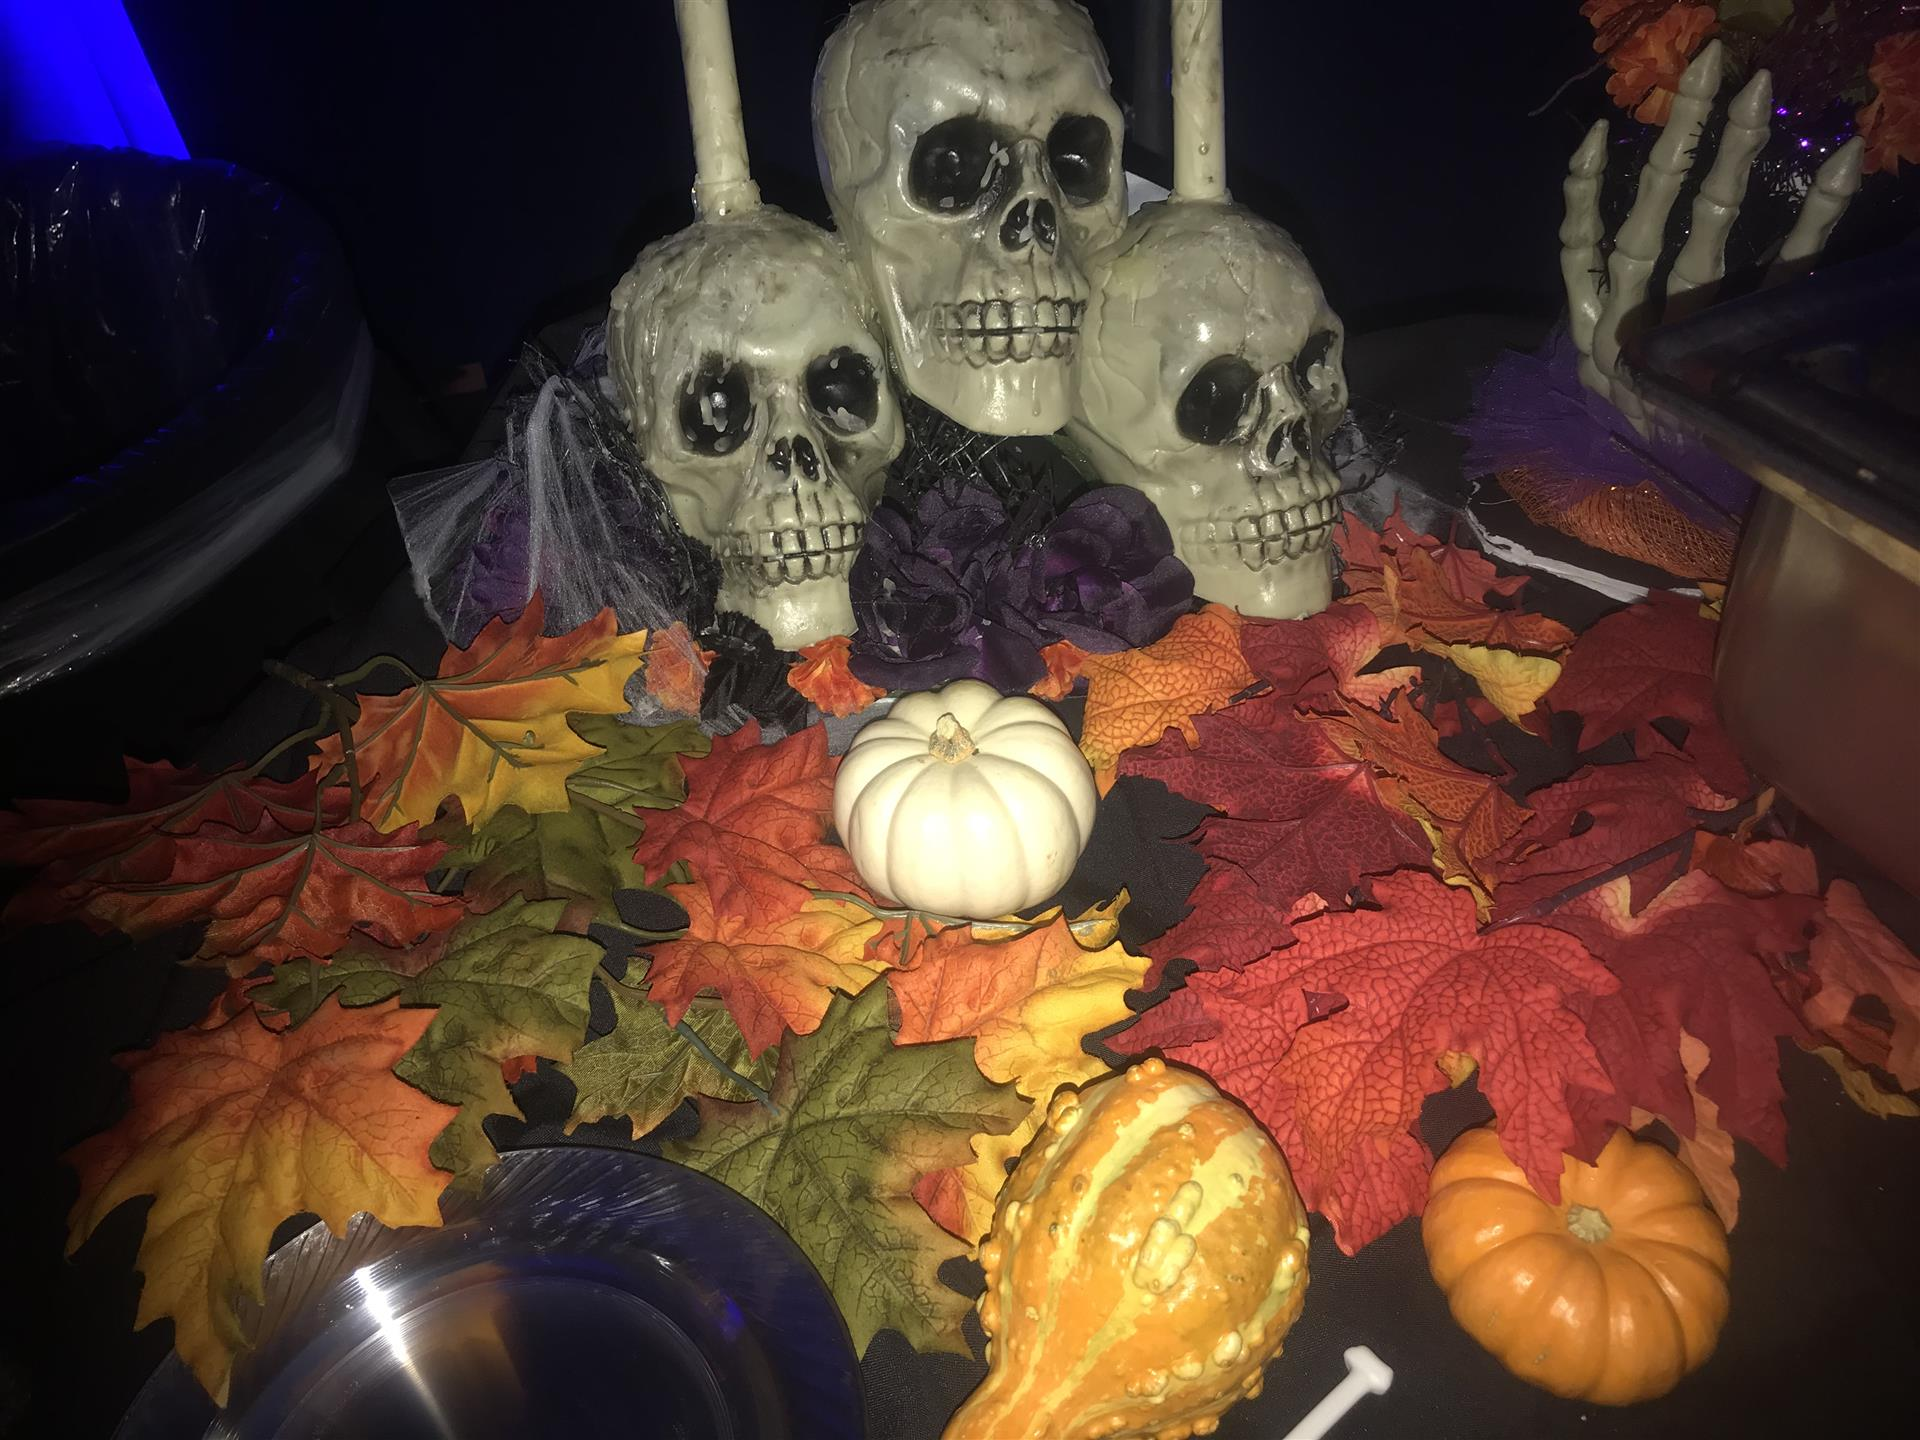 Halloween decor with skeltons, leaves, and pumpkins on a black tablecloth